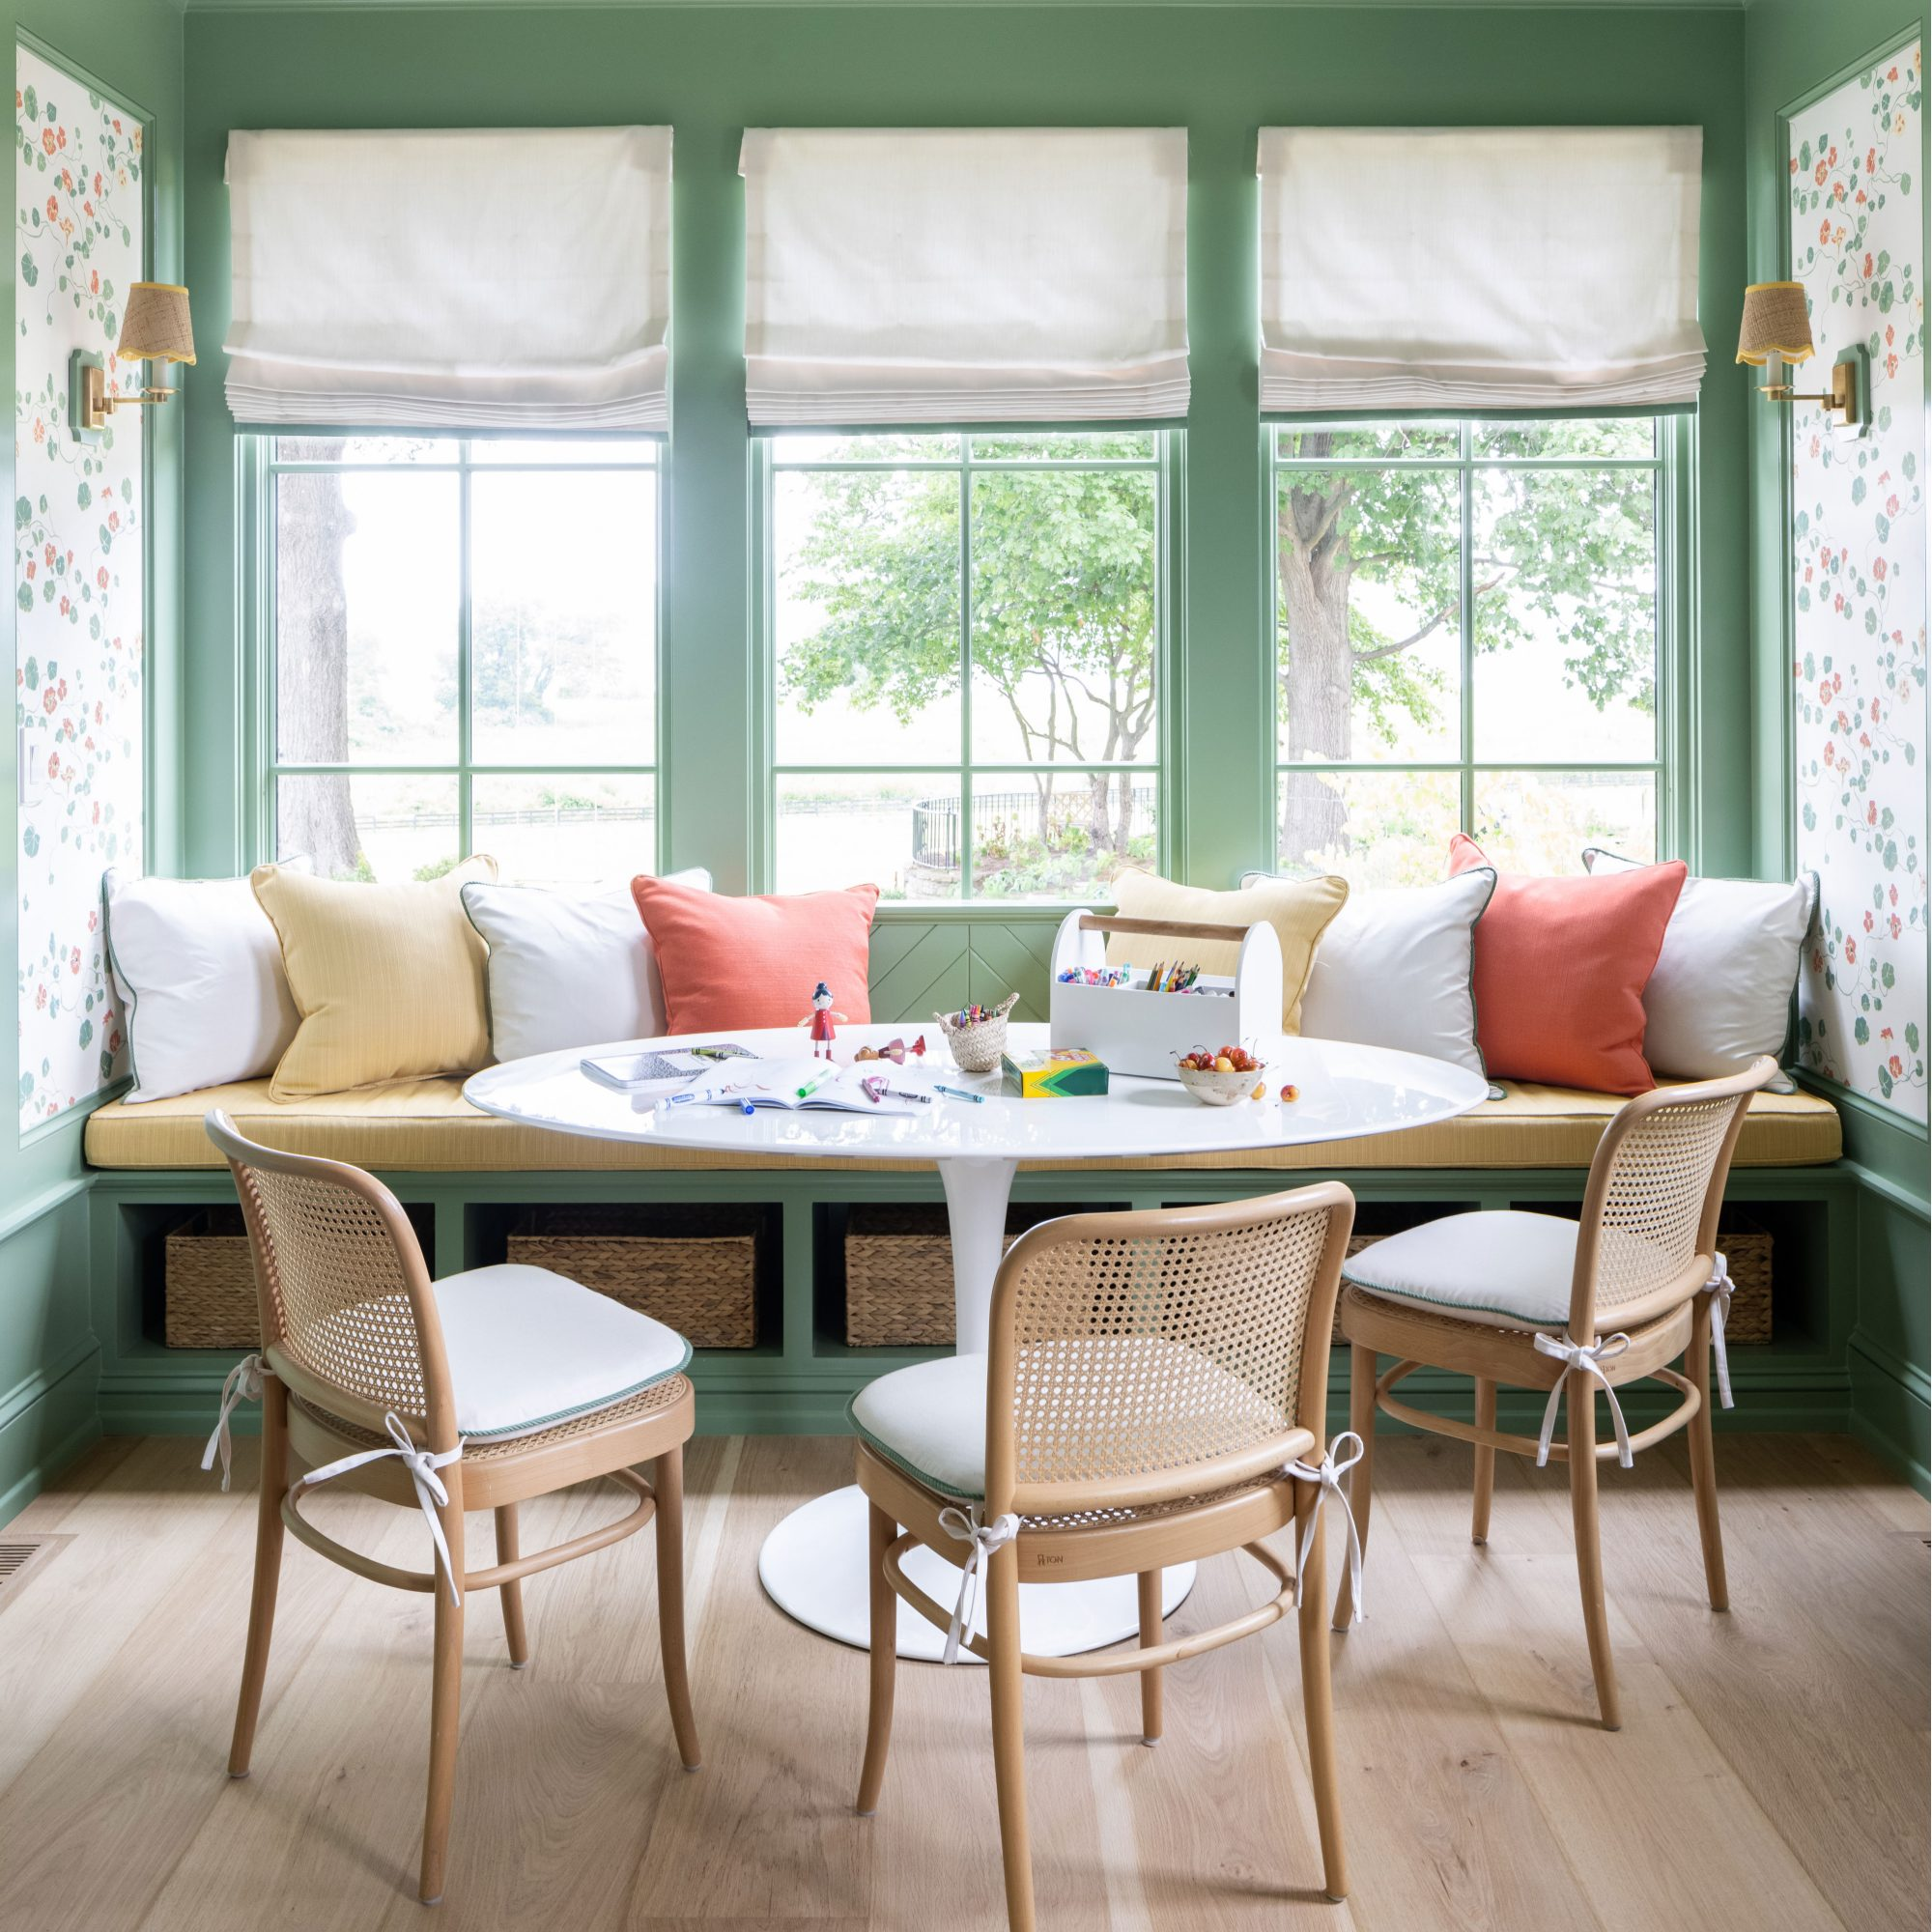 2021 Idea House Study Breakfast Nook with Banquet Seating